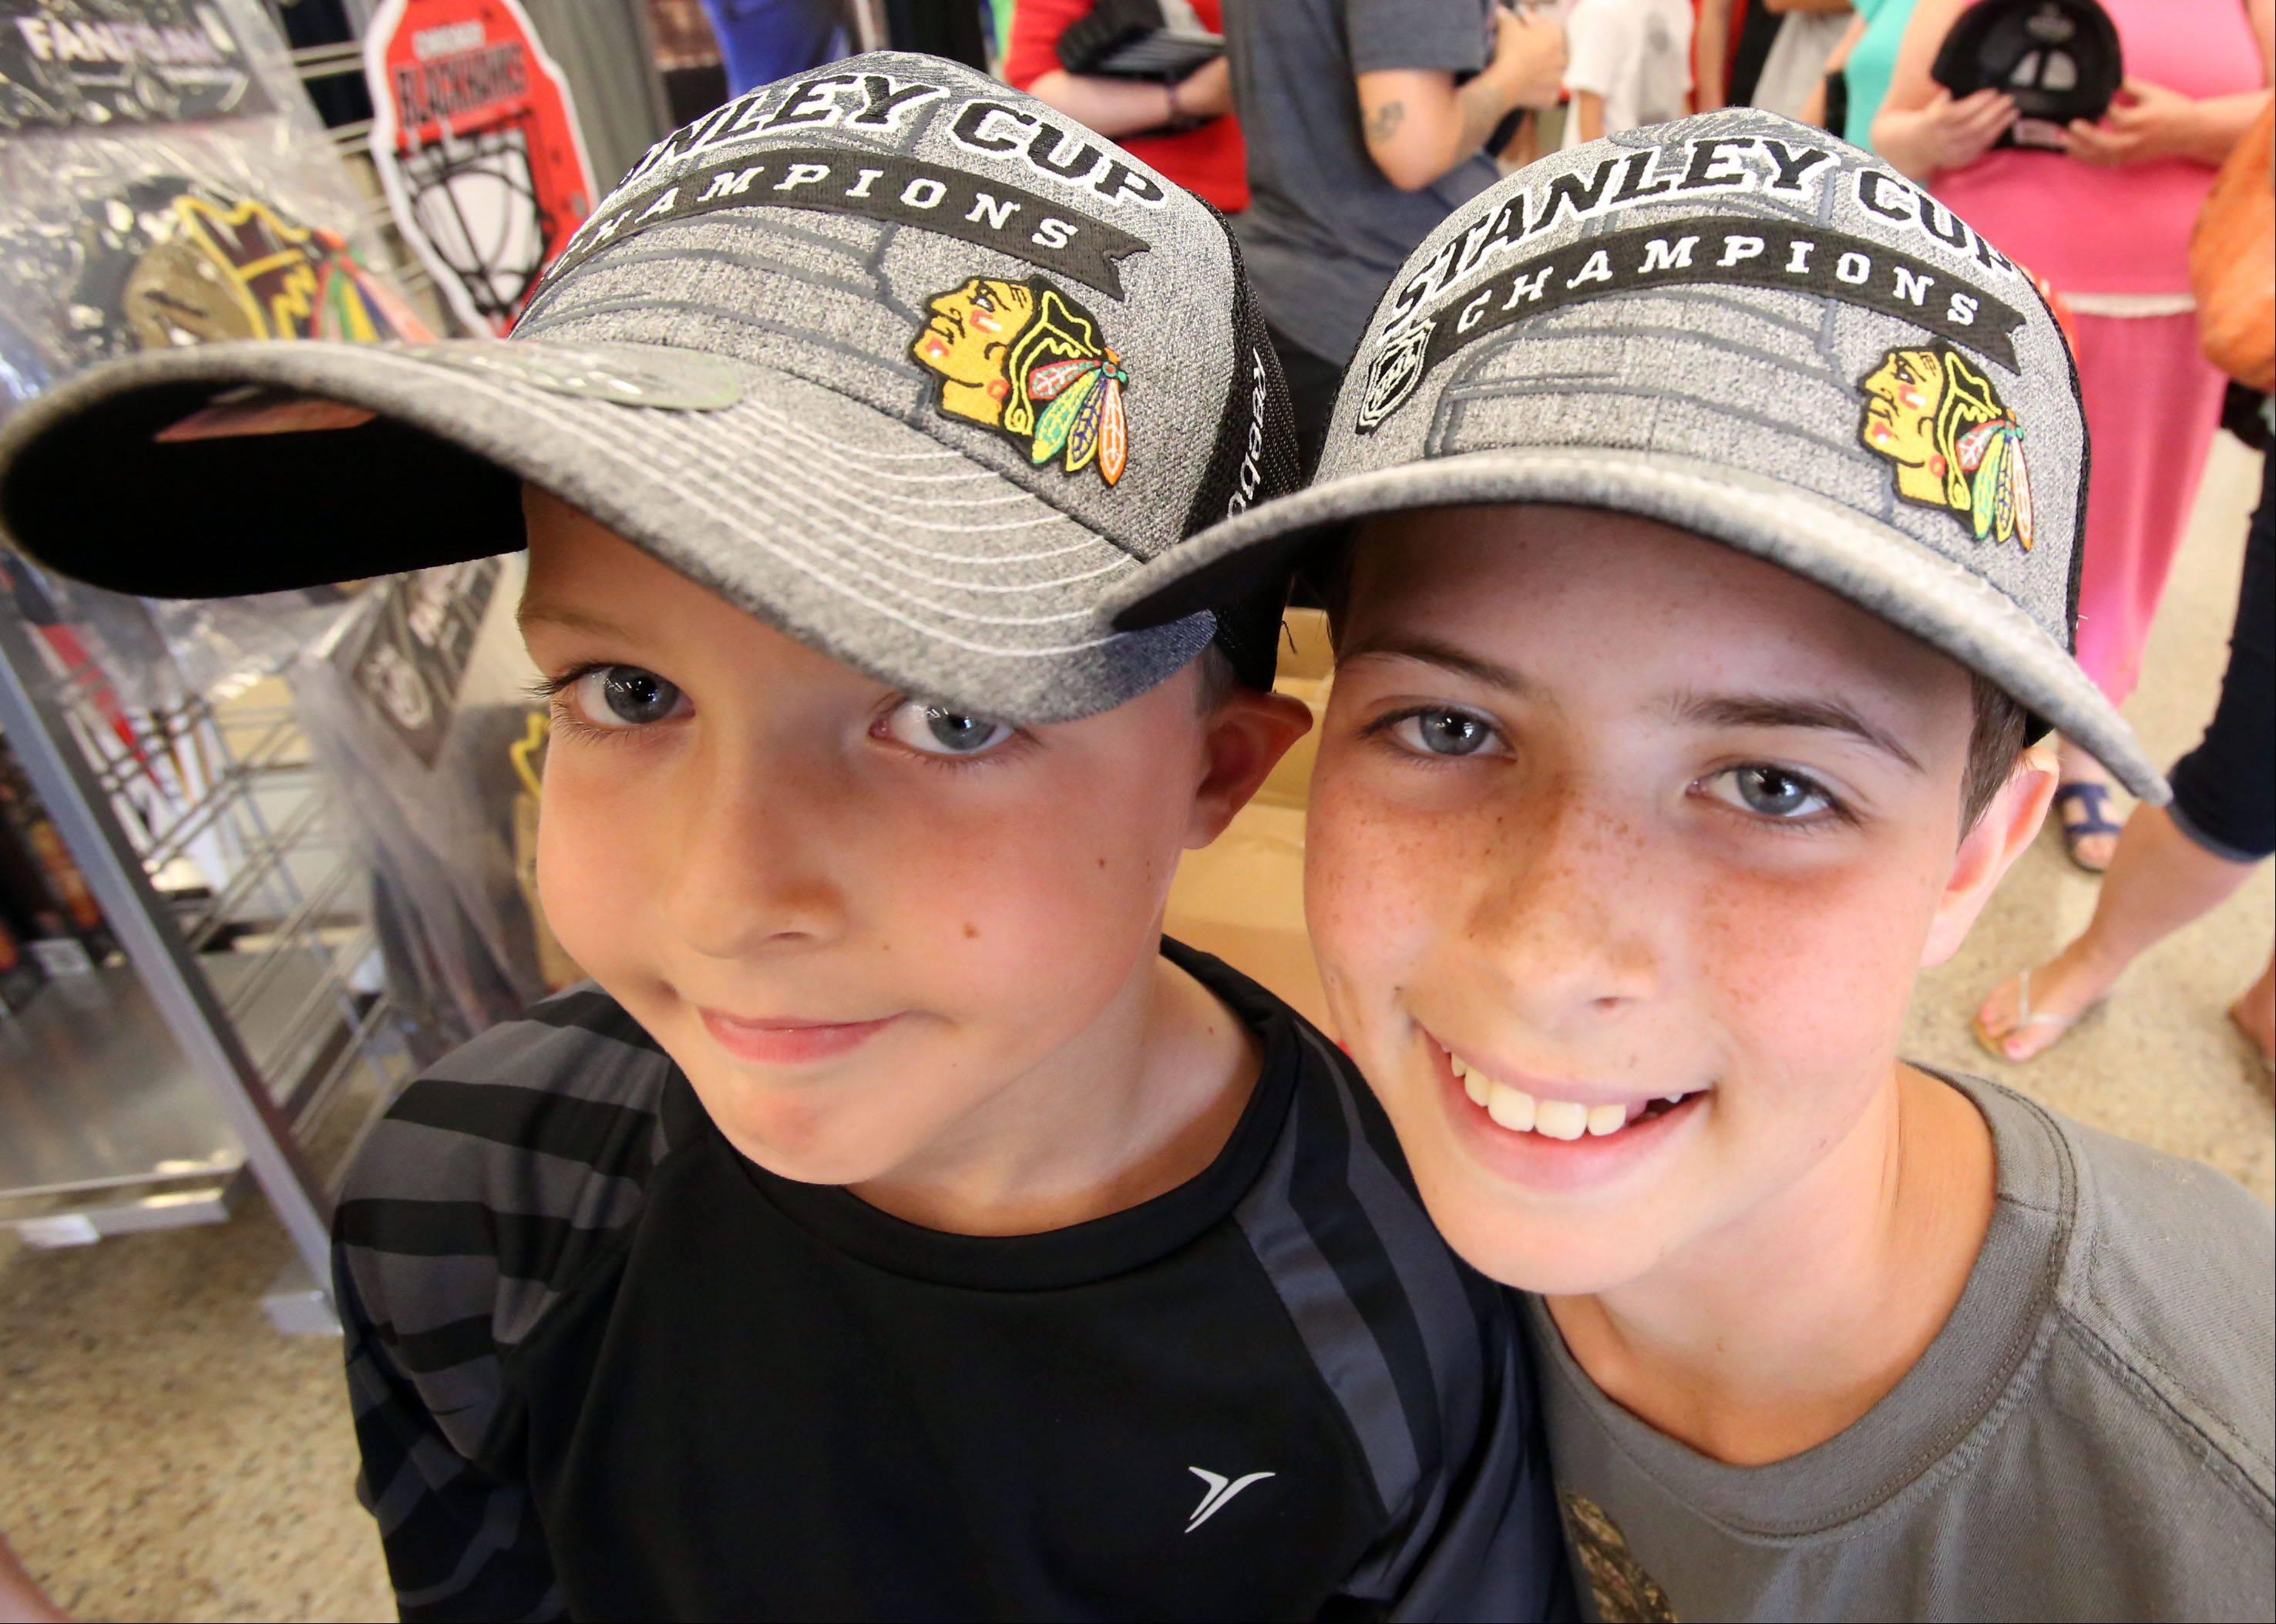 Even though they waited two hours in line, Patrick Tinsley, 7, left, and his brother Jack, 12, of Arlington Heights, are all smiles after getting their official Chicago Blackhawks Stanley Cup hats on Tuesday at Sports Authority in Mount Prospect.